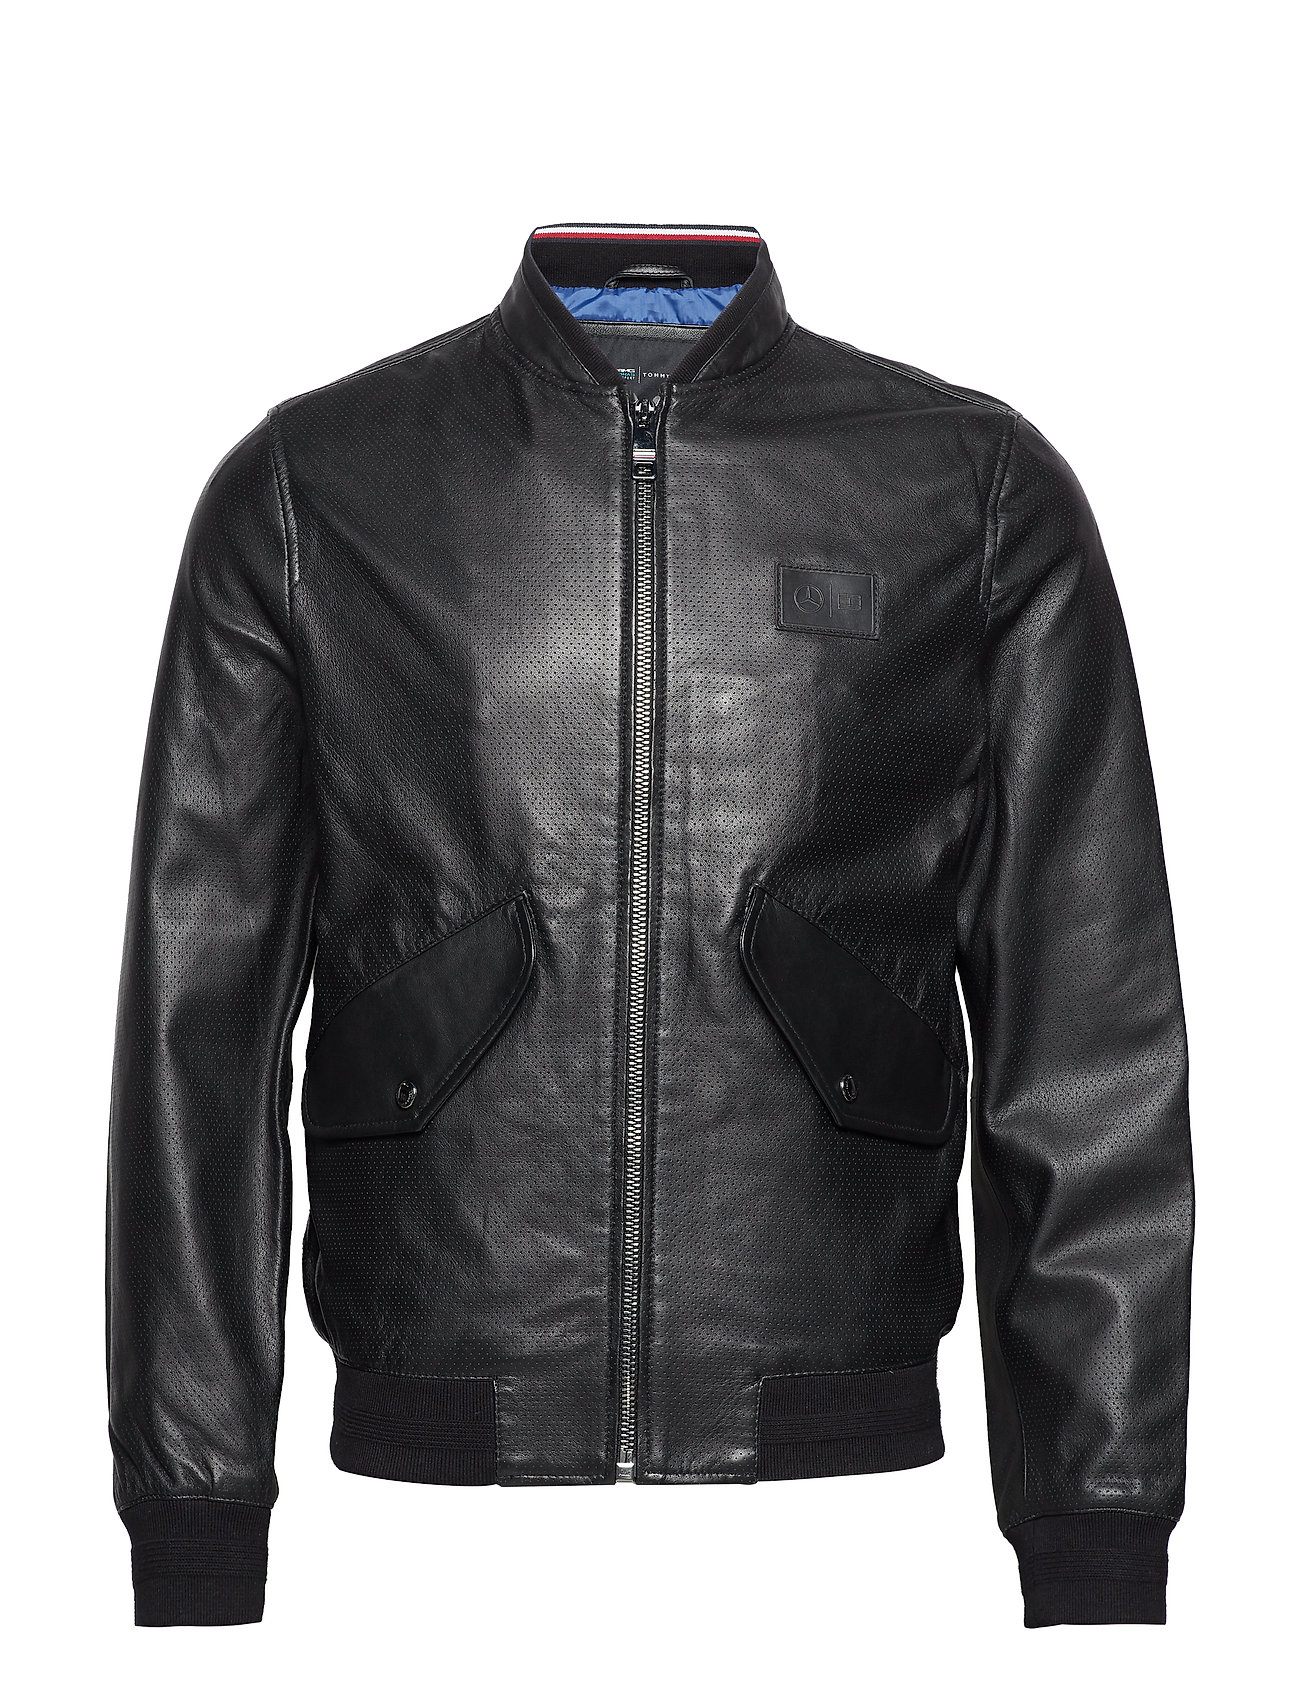 Tommy Hilfiger 2 MB PERFORATED LEATHER BOMBER - JET BLACK